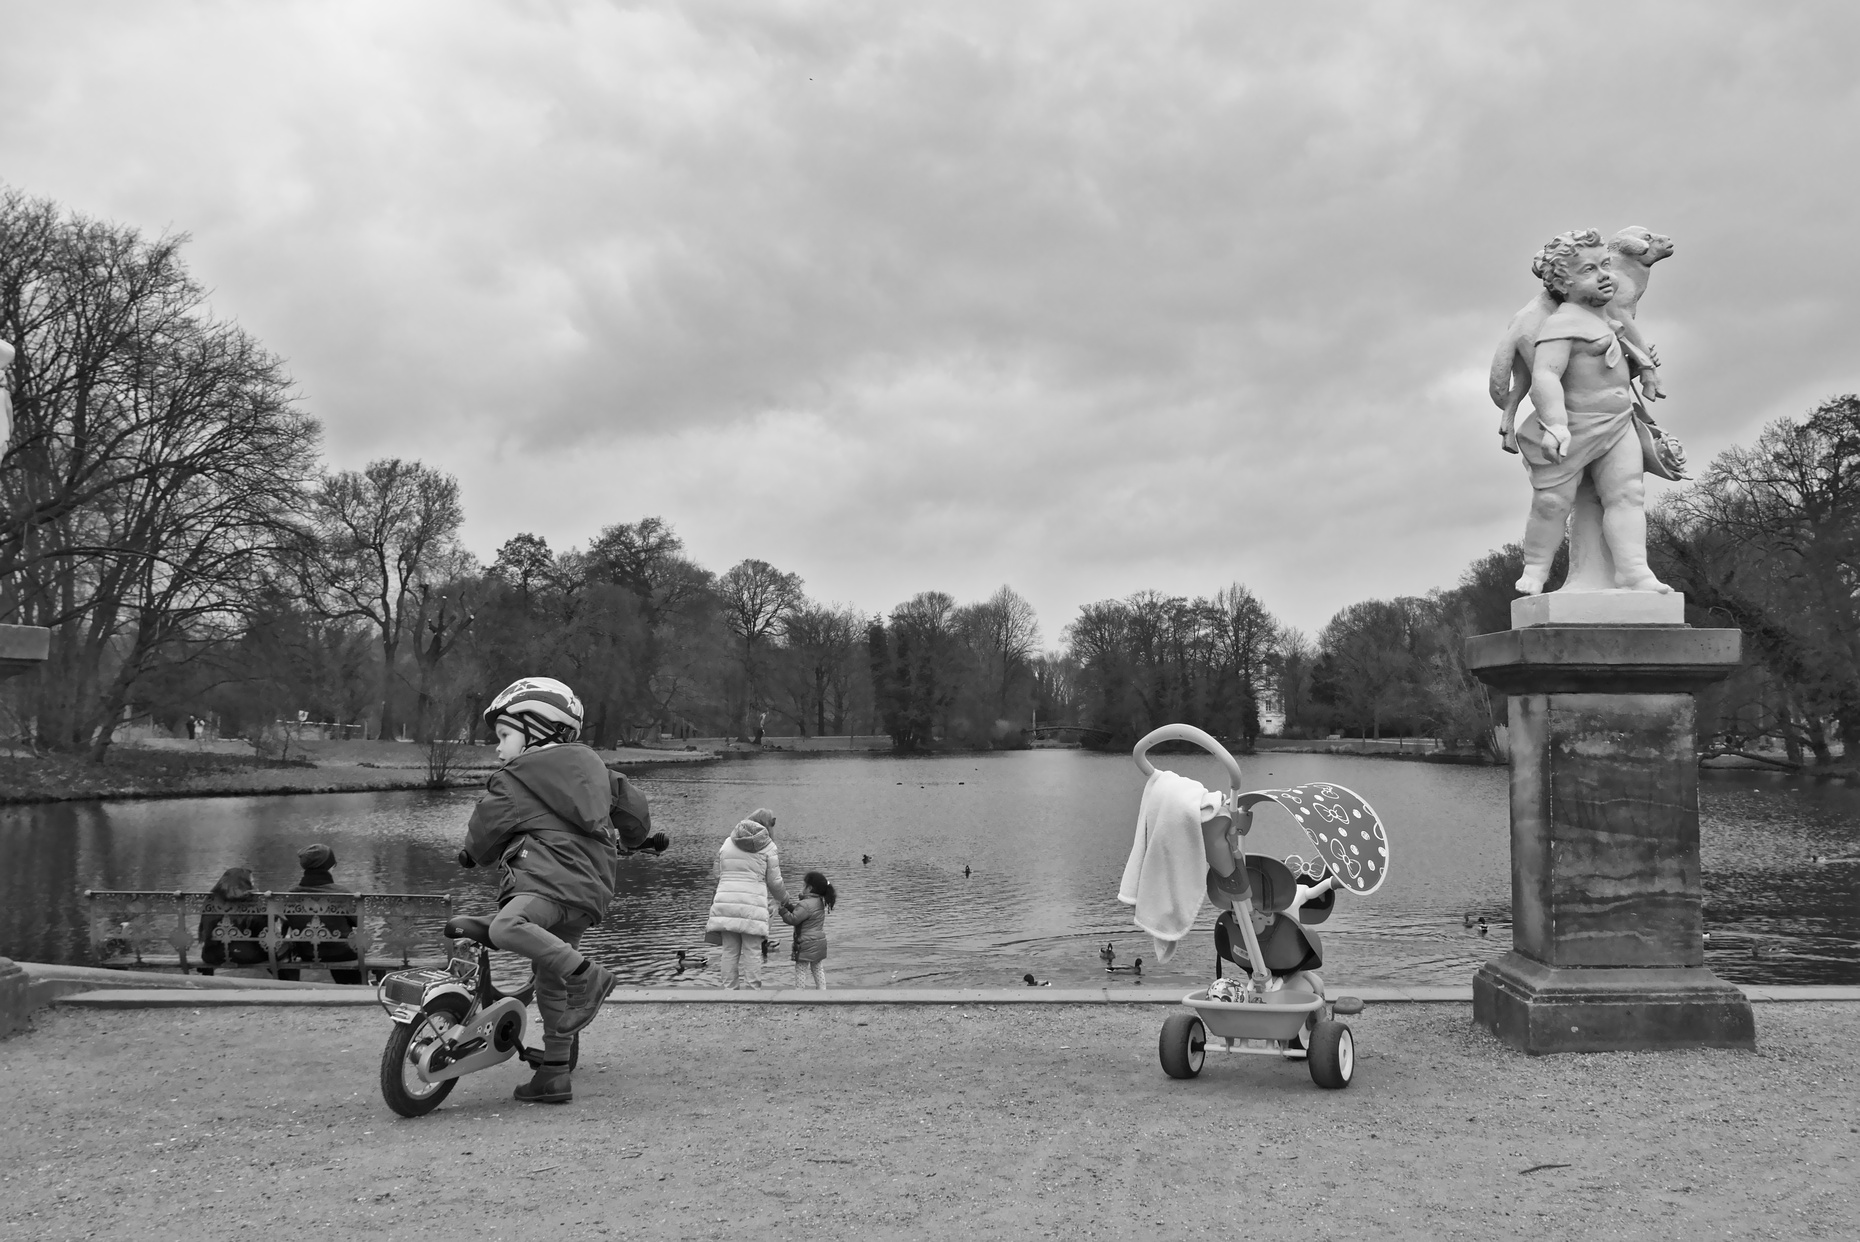 A young boy unmounting his bicycle in the garden of Schloss Charlottenburg